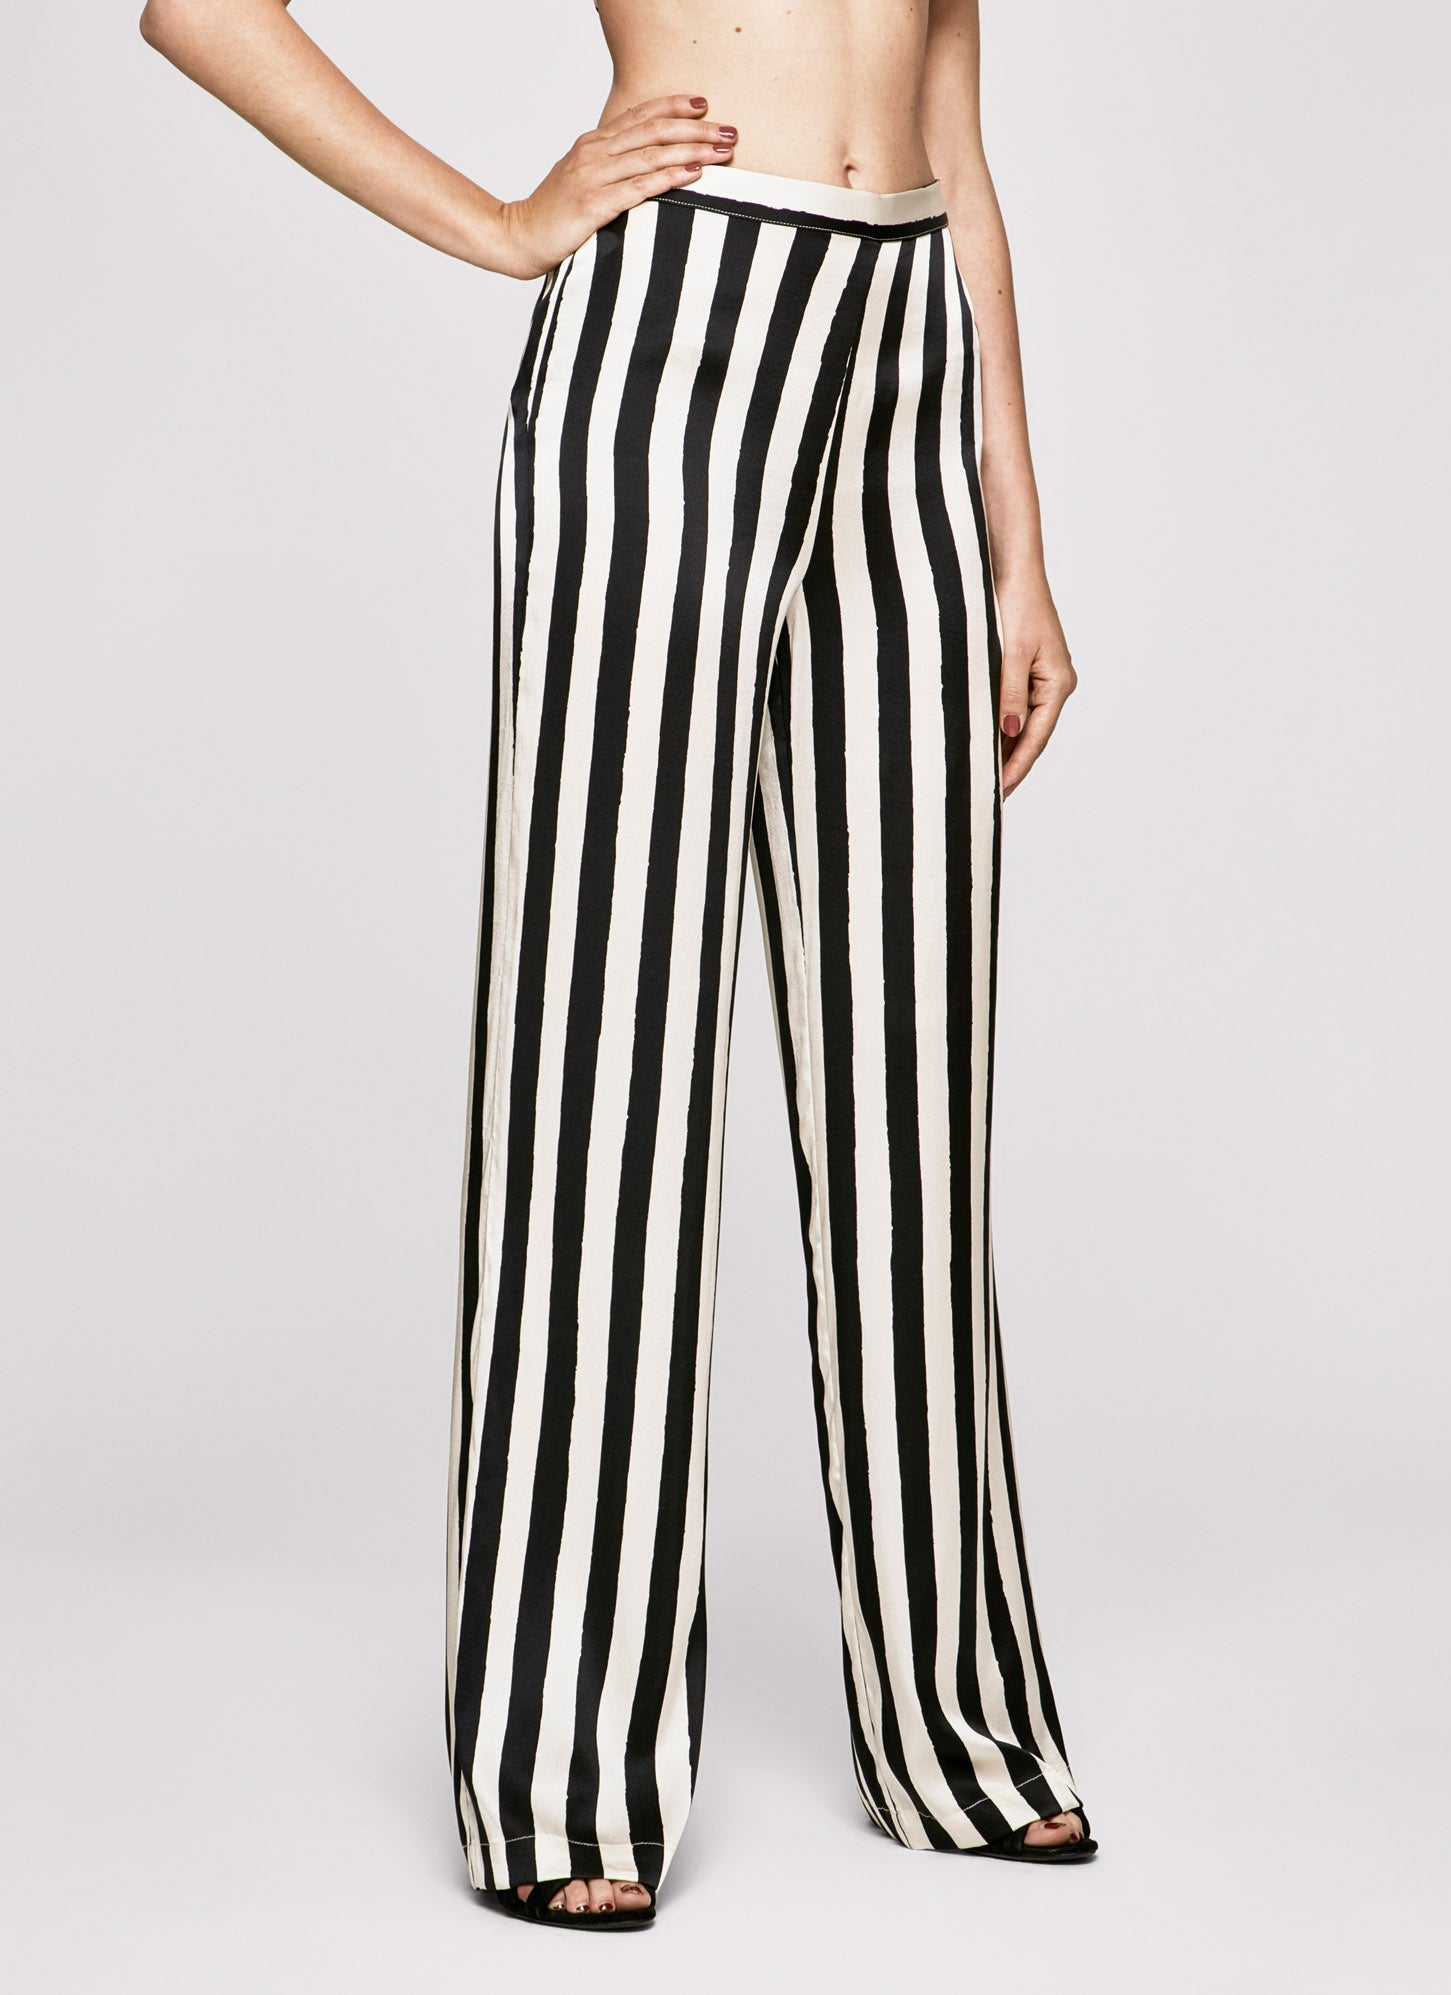 Black & White Stripes Wide Leg Flares